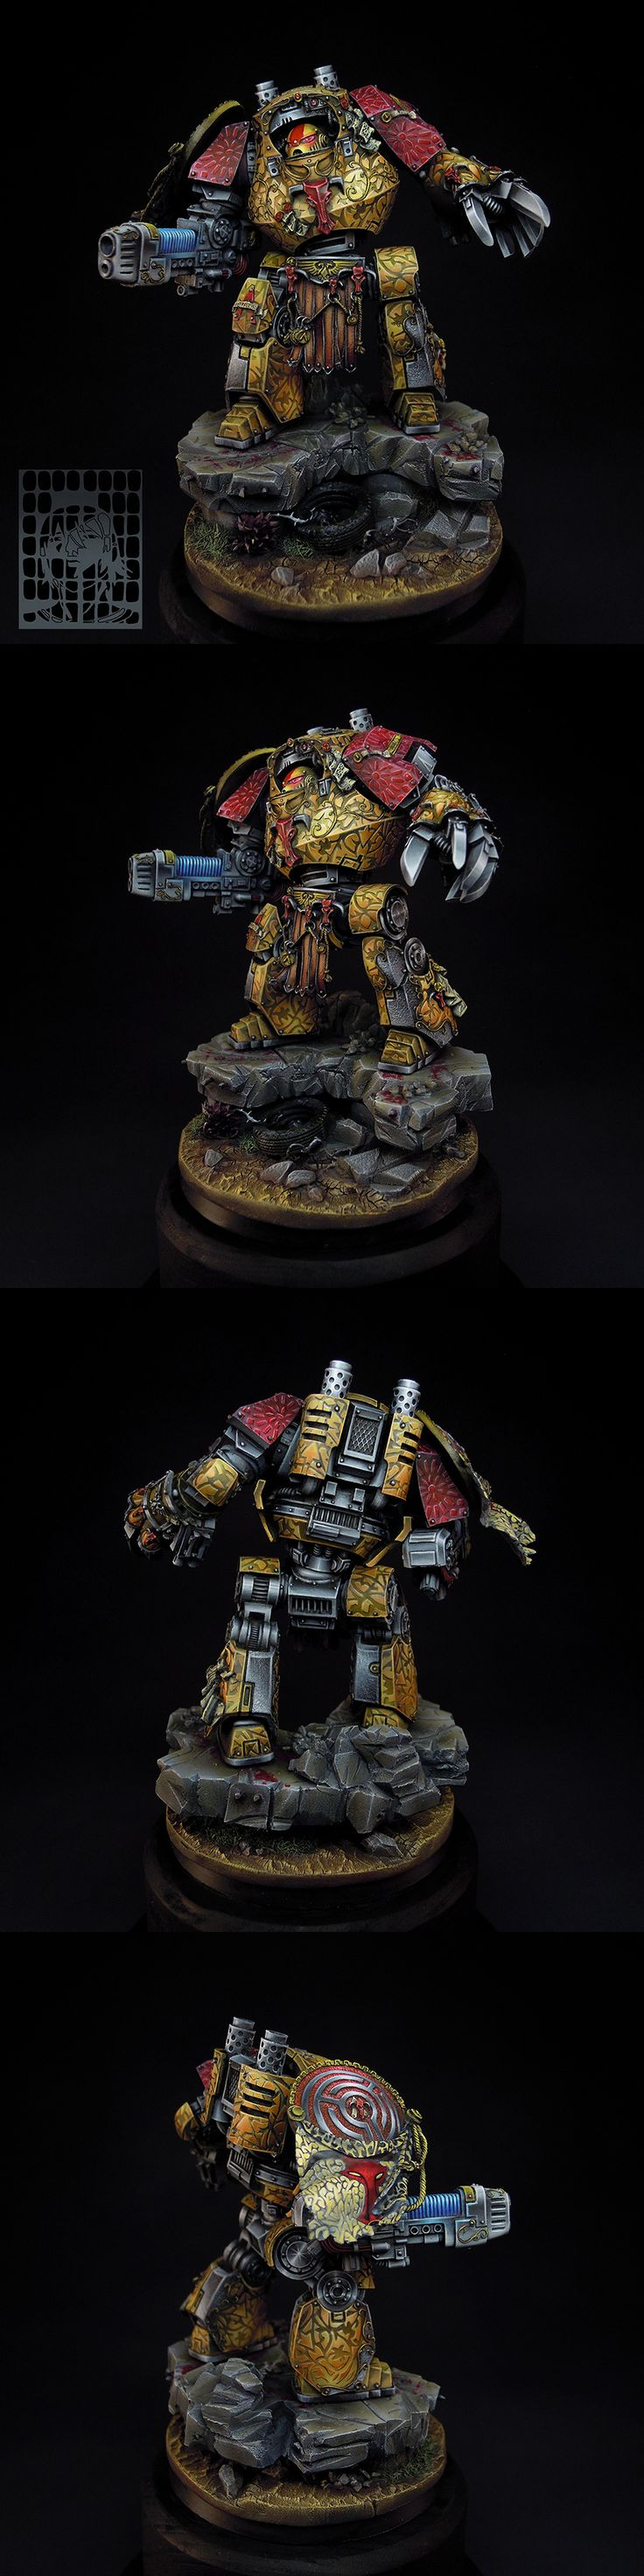 Hecaton Aiakos Minotaurs Contemptor Dreadnought [commission] - Forum - DakkaDakka | So good we named it twice.